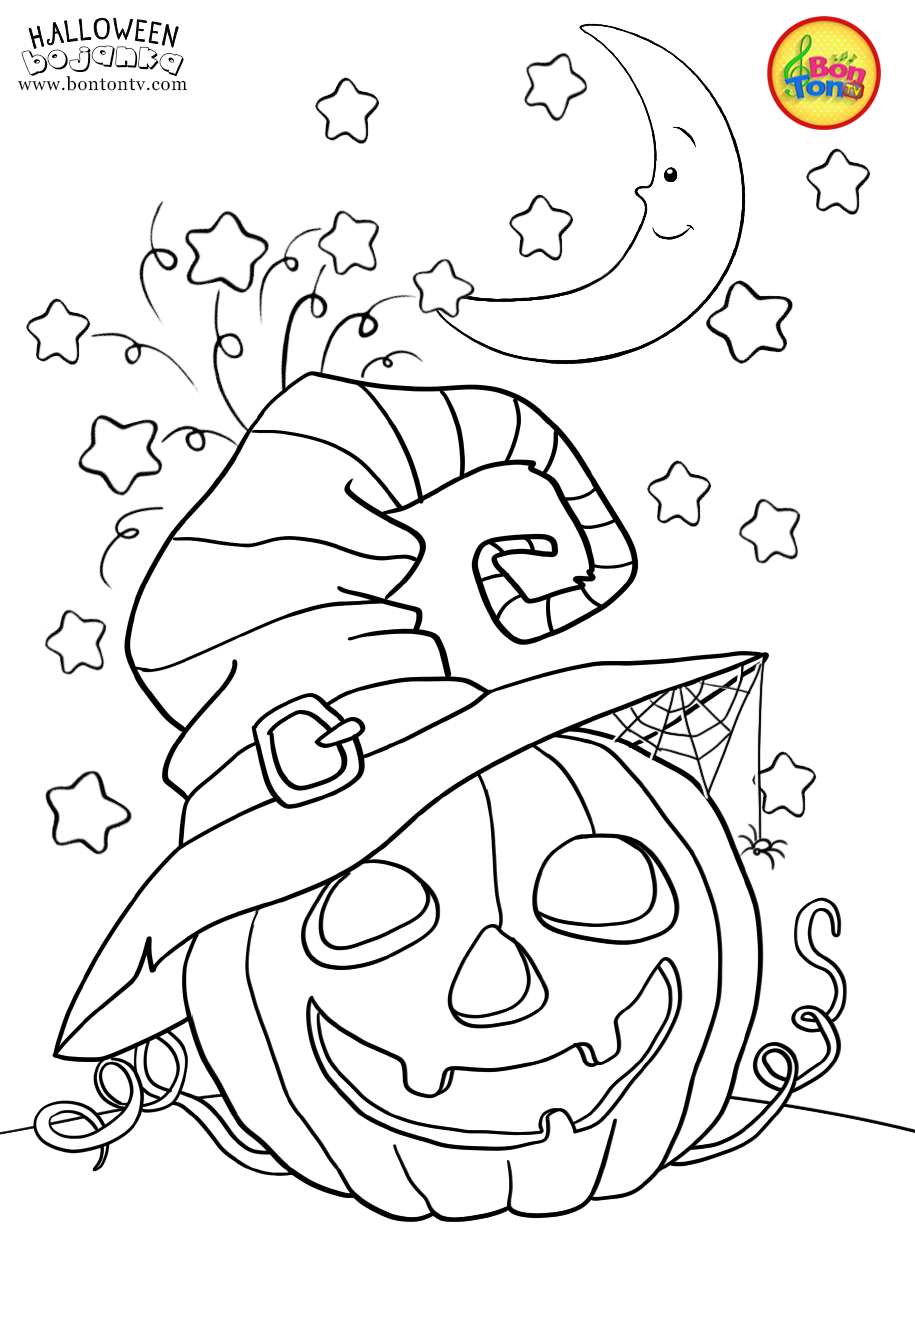 Halloween Coloring Pages For Kids Free Preschool Printables Noc Vj Halloween Coloring Book Free Halloween Coloring Pages Halloween Coloring Pages Printable